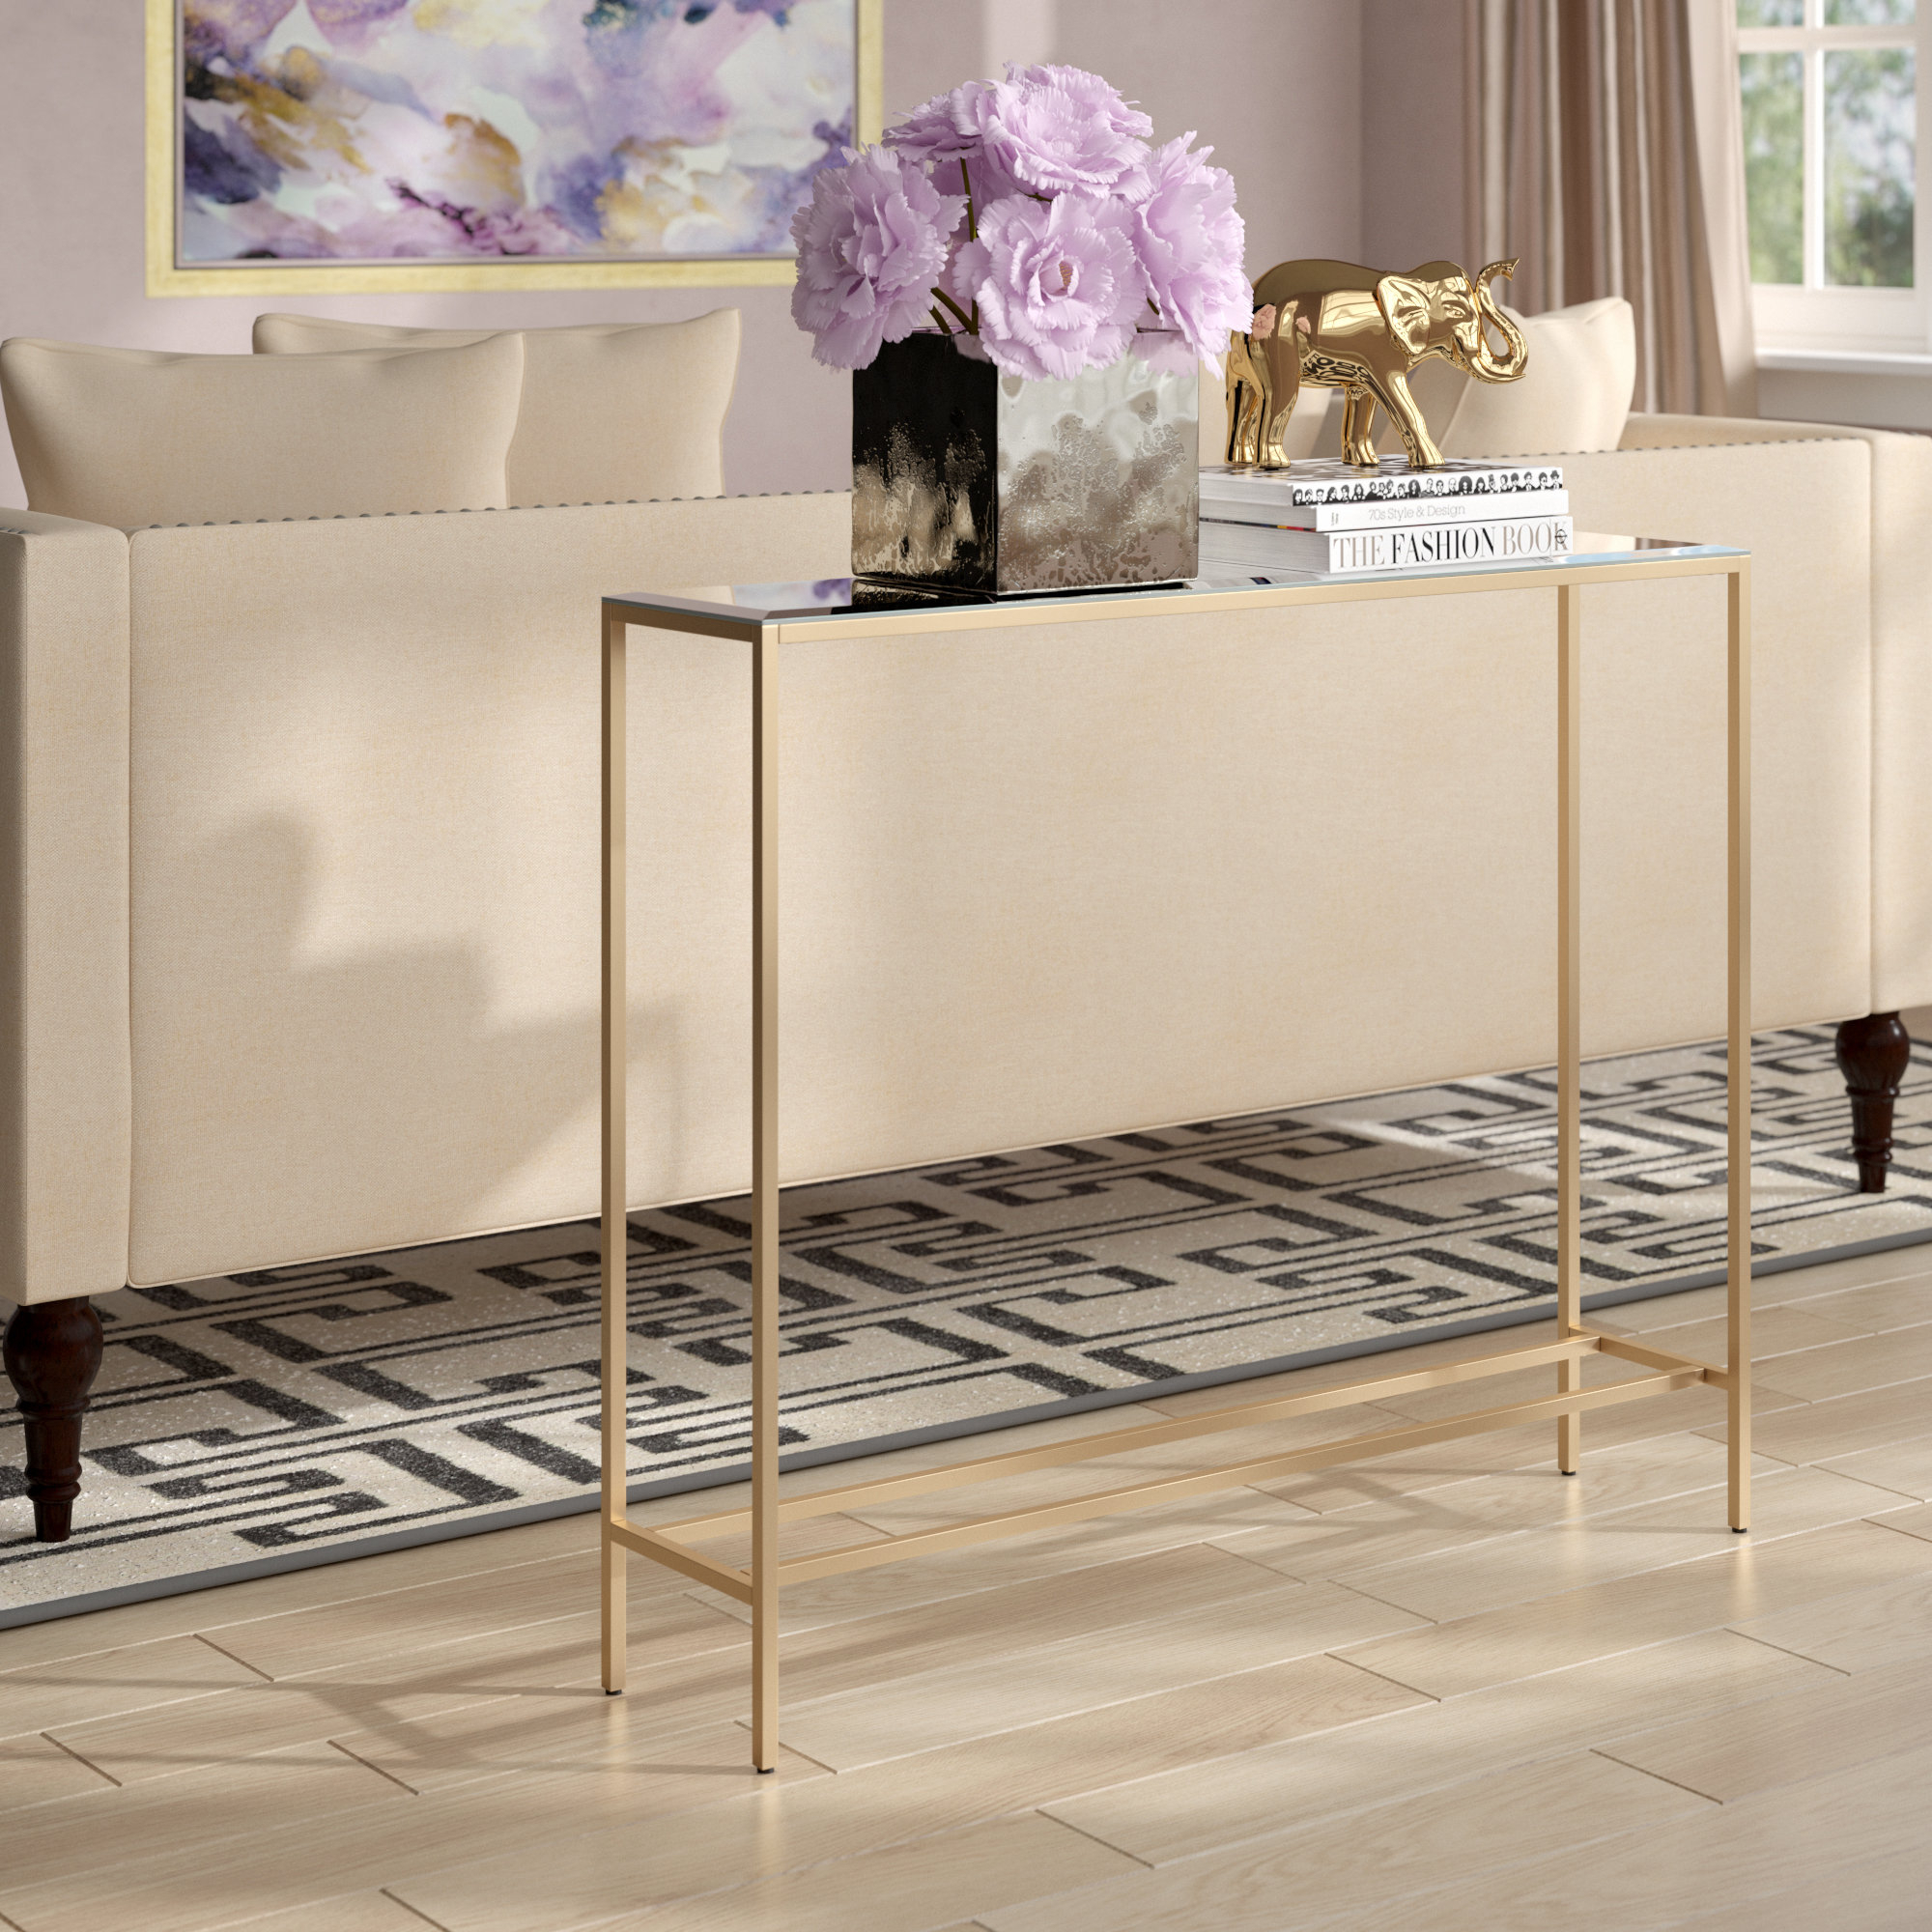 Gold Console Tables You'll Love | Wayfair In Mix Patina Metal Frame Console Tables (View 26 of 30)